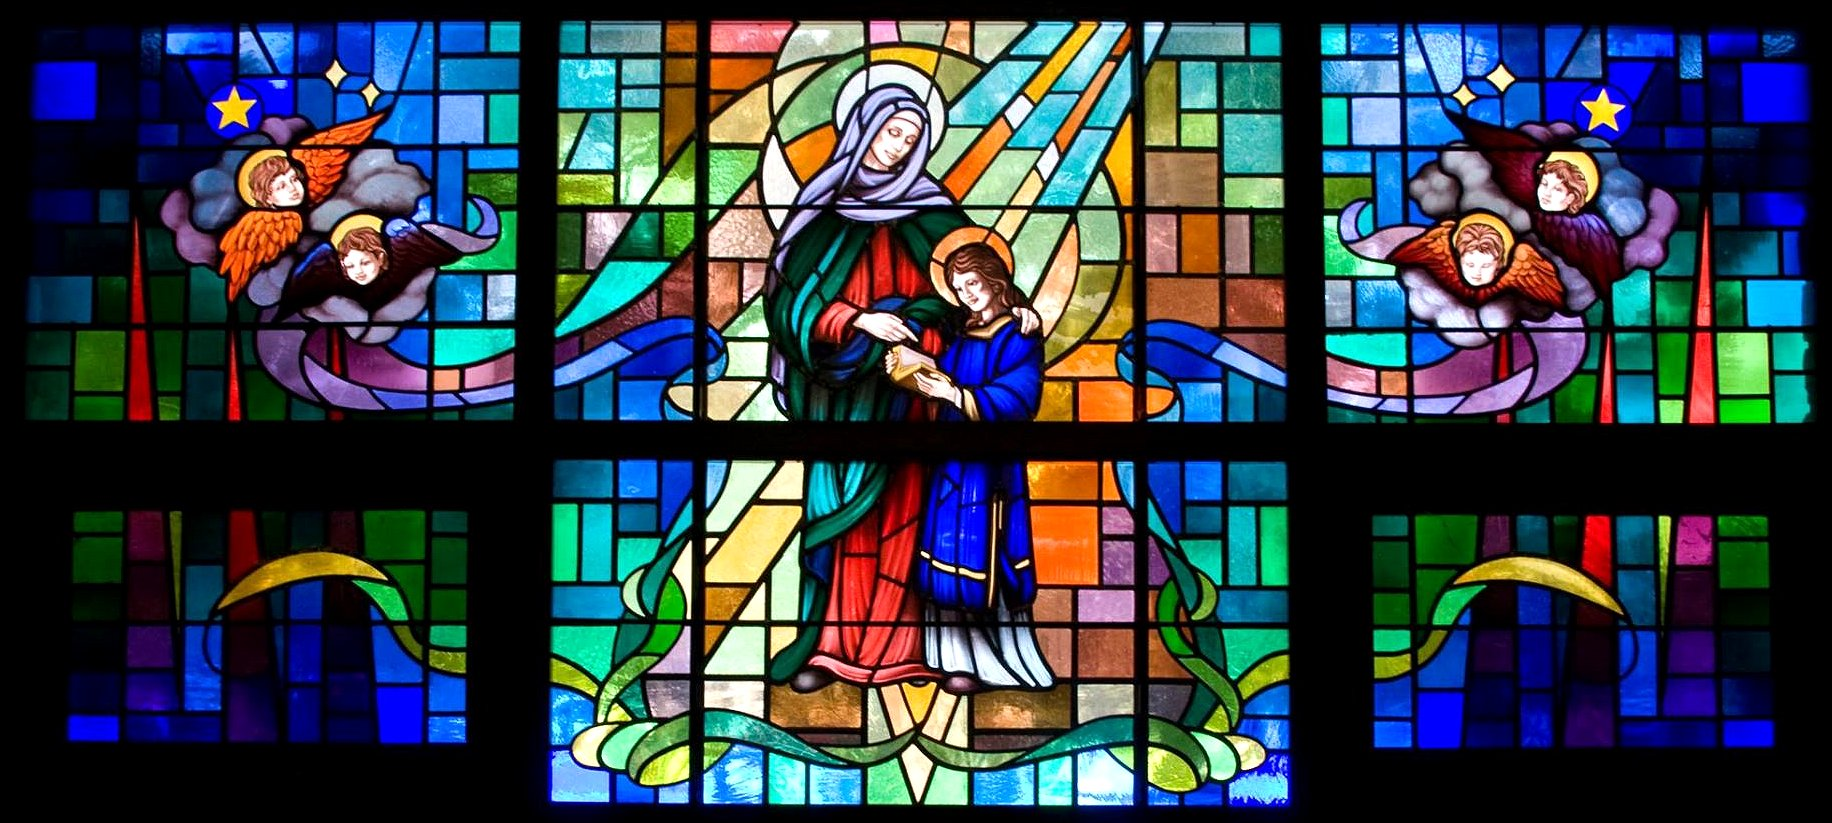 Saint Anne Stained Glass Google image from https://www.facebook.com/catholiccemeteriesfuneralservices/photos/pb.1549040632084620.-2207520000.1472364307./1653835971605085/?type=3&theater r